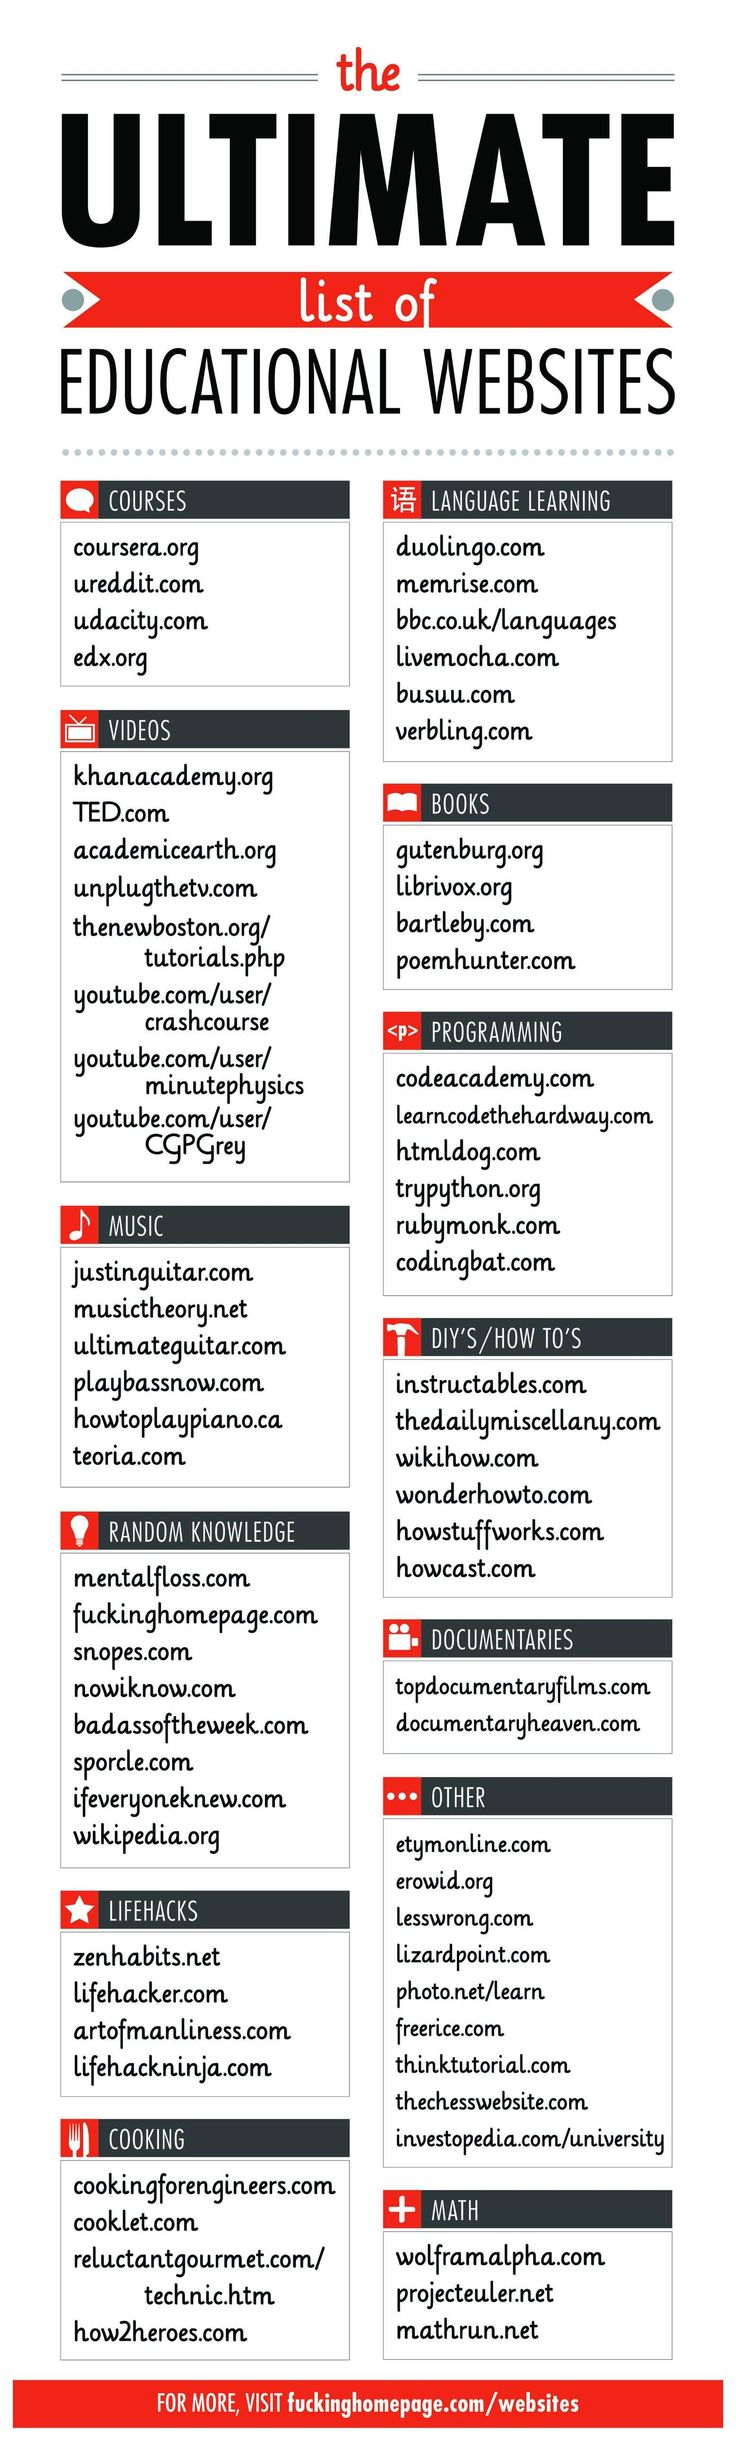 A great list of educational websites.